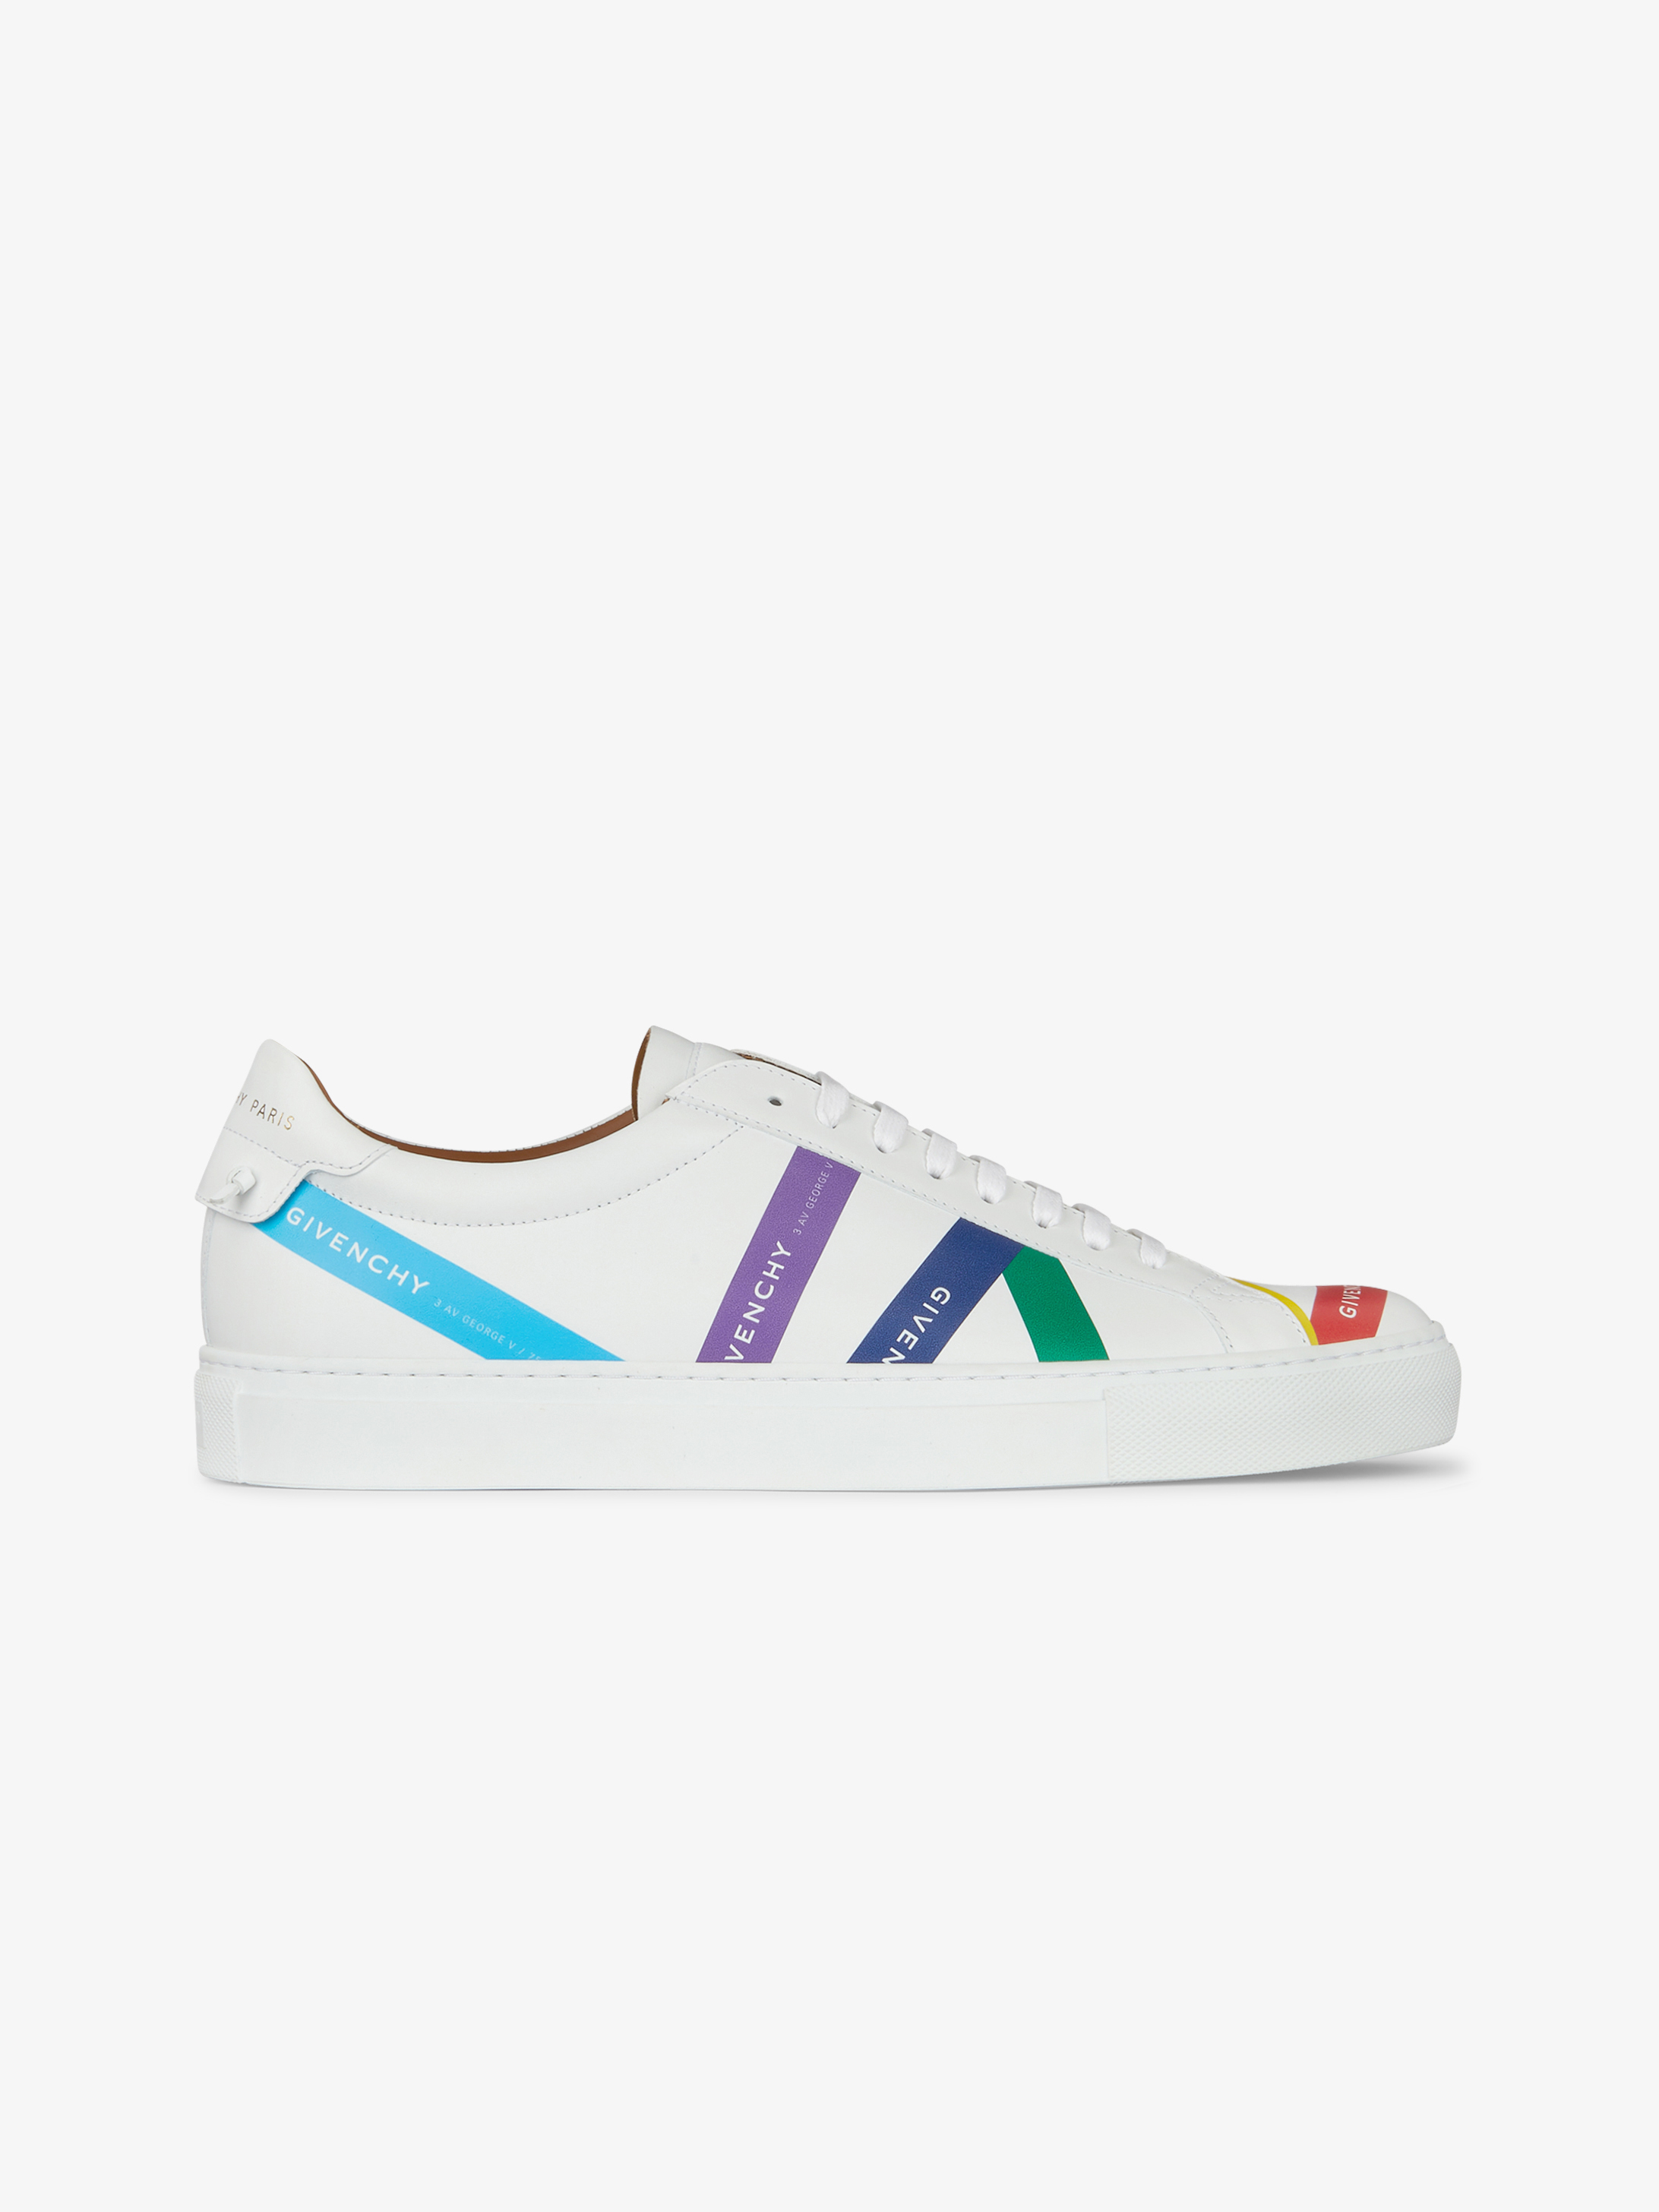 GIVENCHY multicolour webbing sneakers in leather